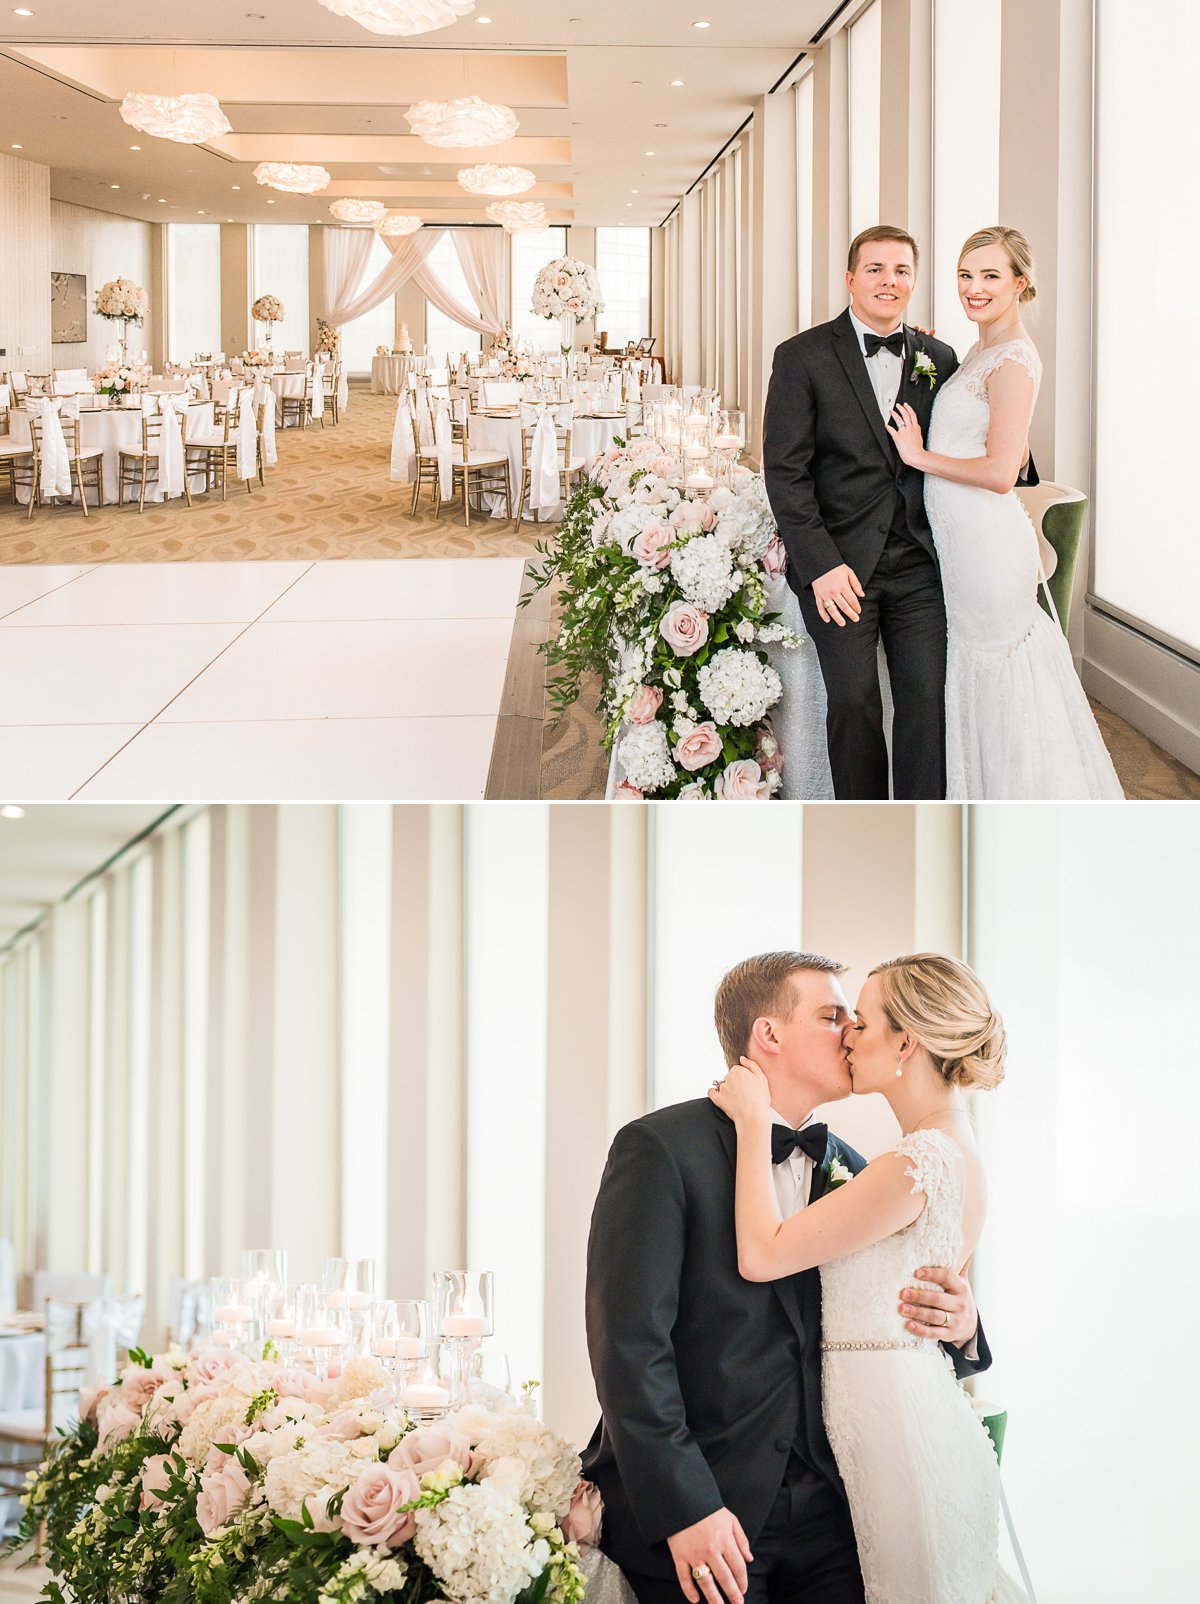 Houston Club Wedding Portraits with Bride and Groom